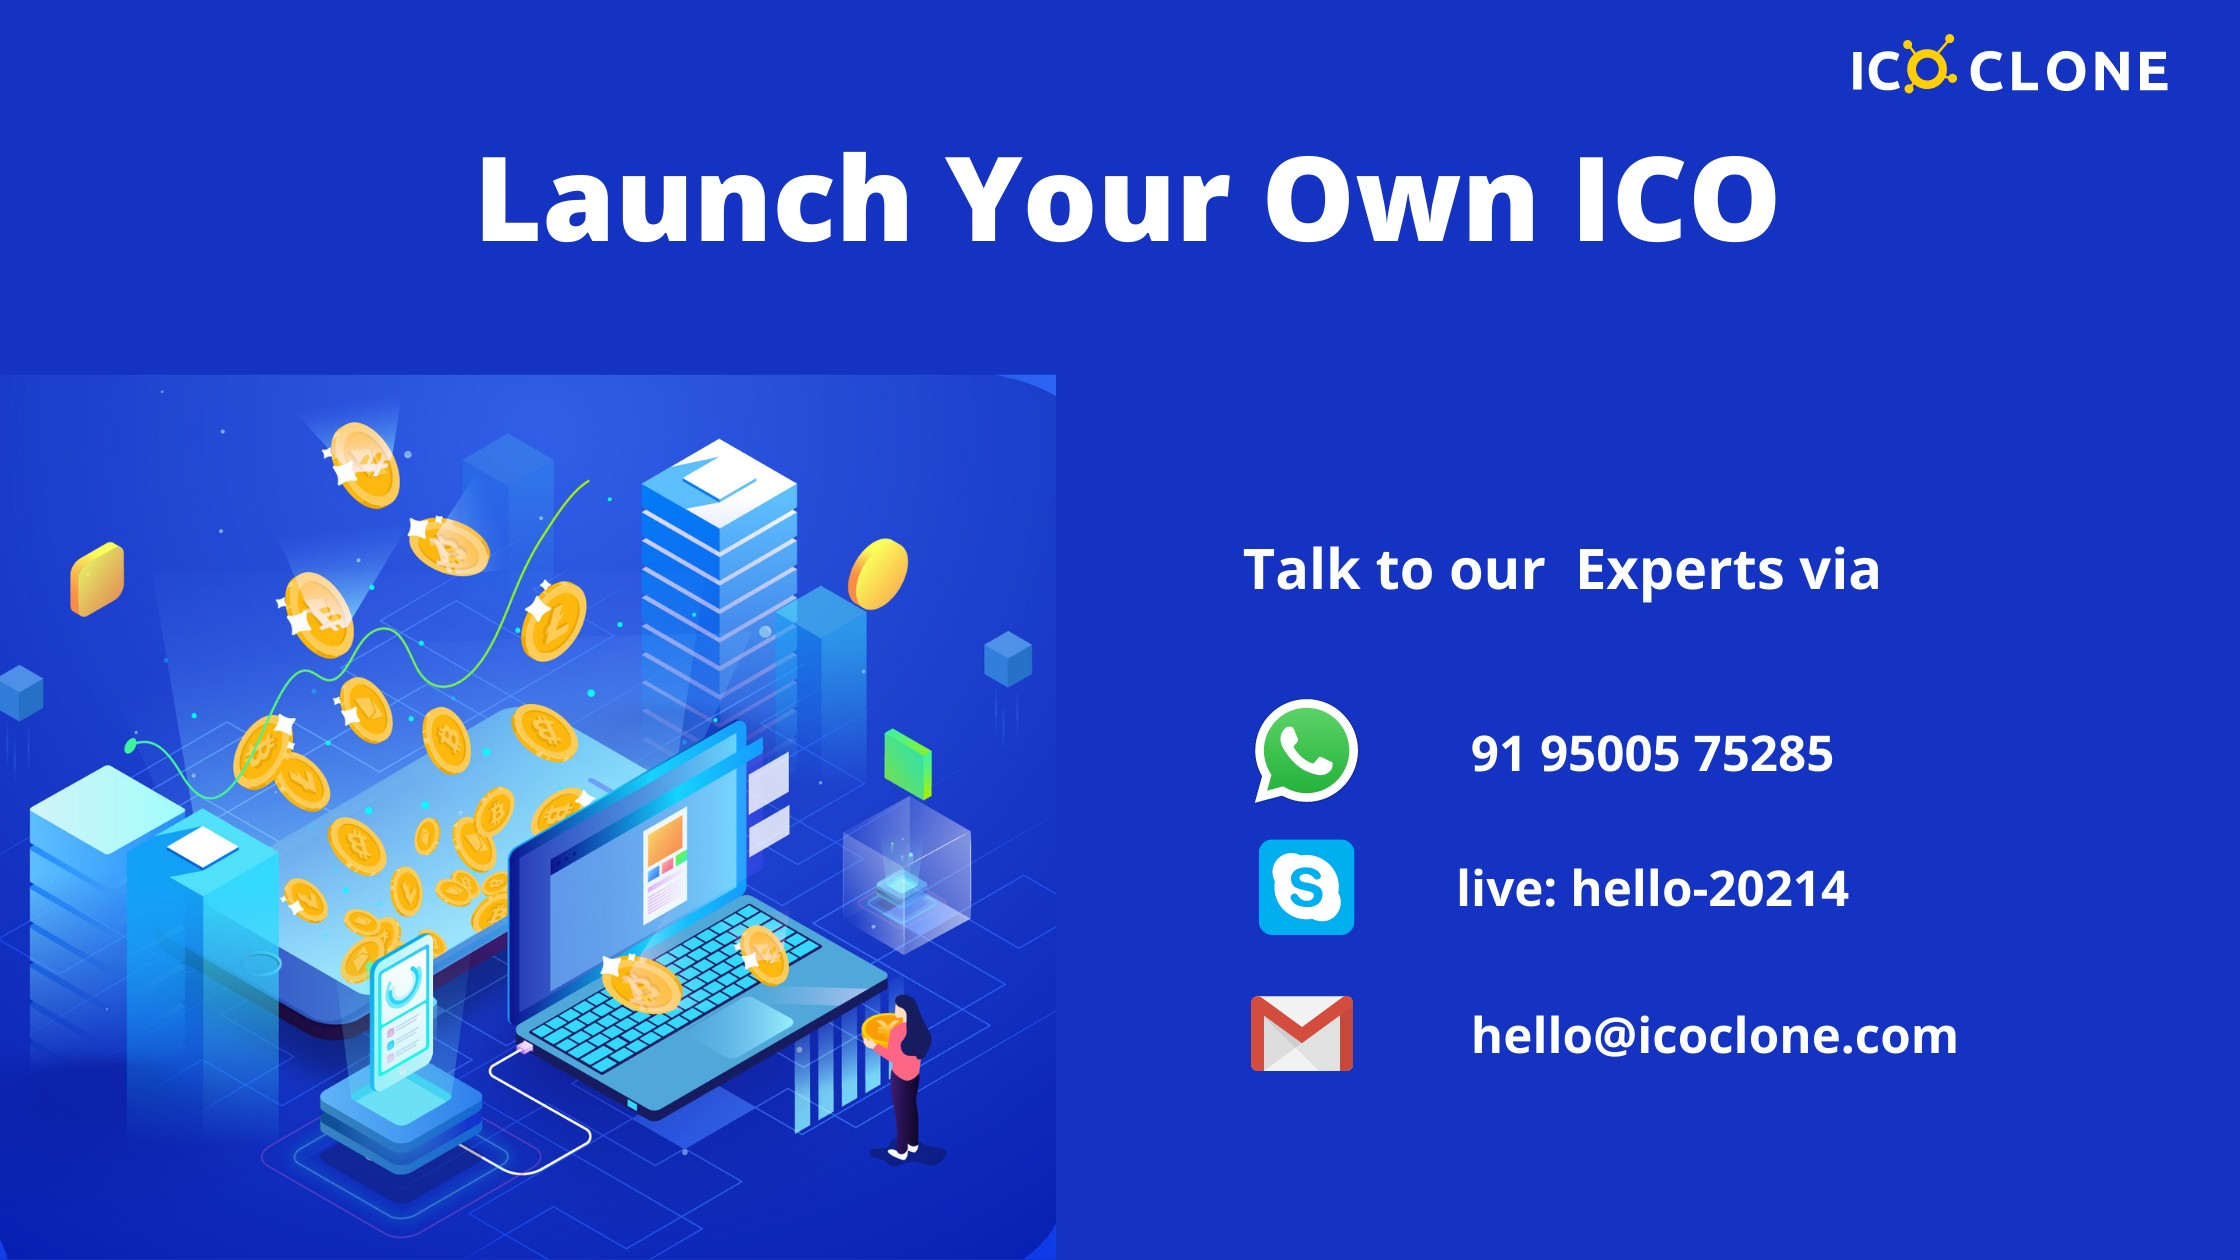 Launch Your own ICO